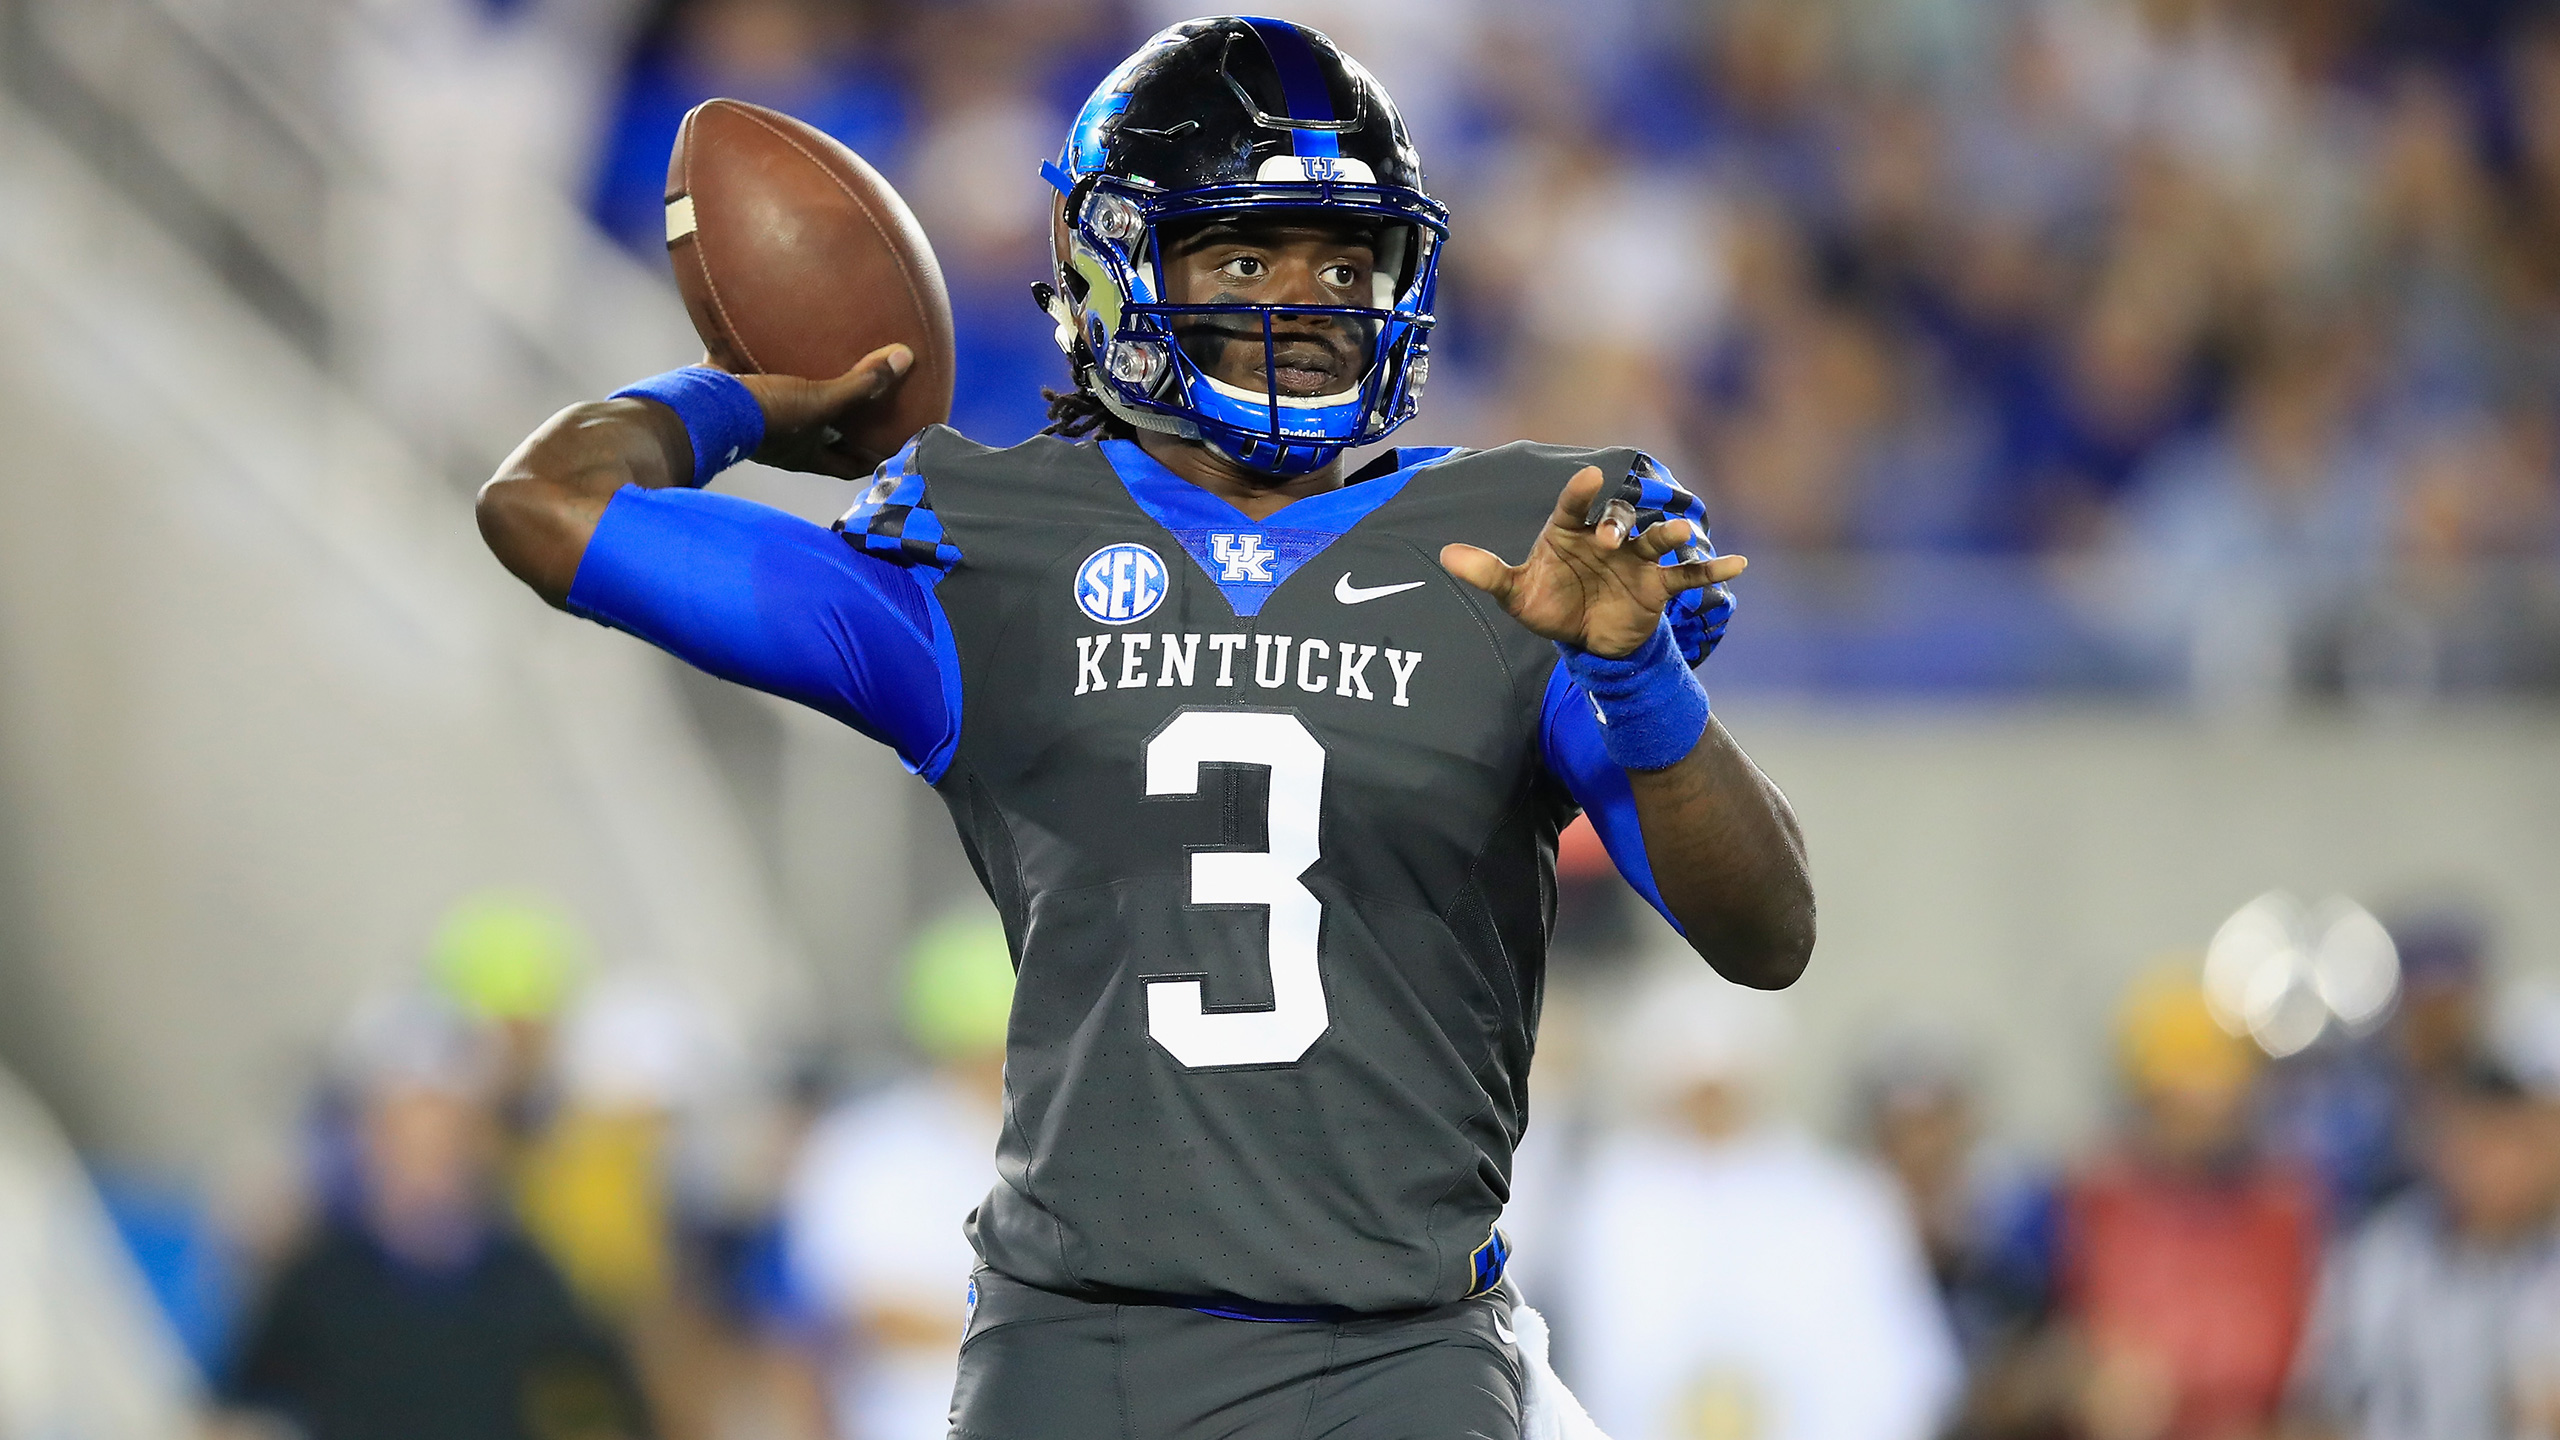 Vanderbilt vs. #14 Kentucky (Football) (re-air)